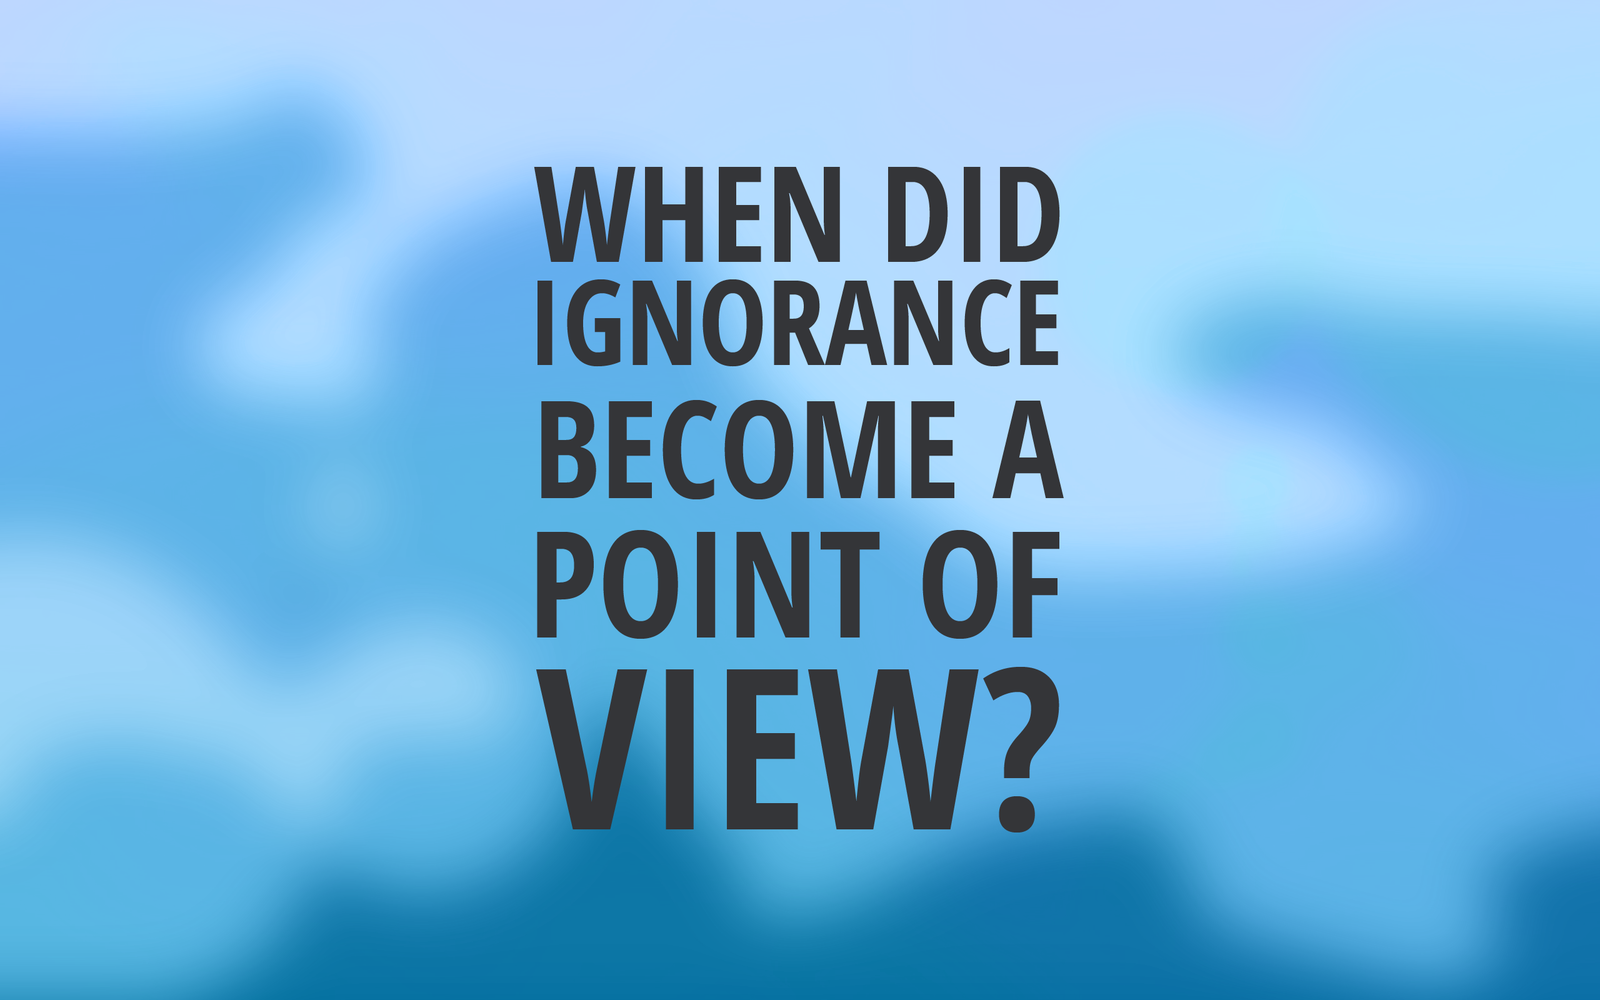 ignorance_2012_by_awe_inspired-d5jhf3v.png